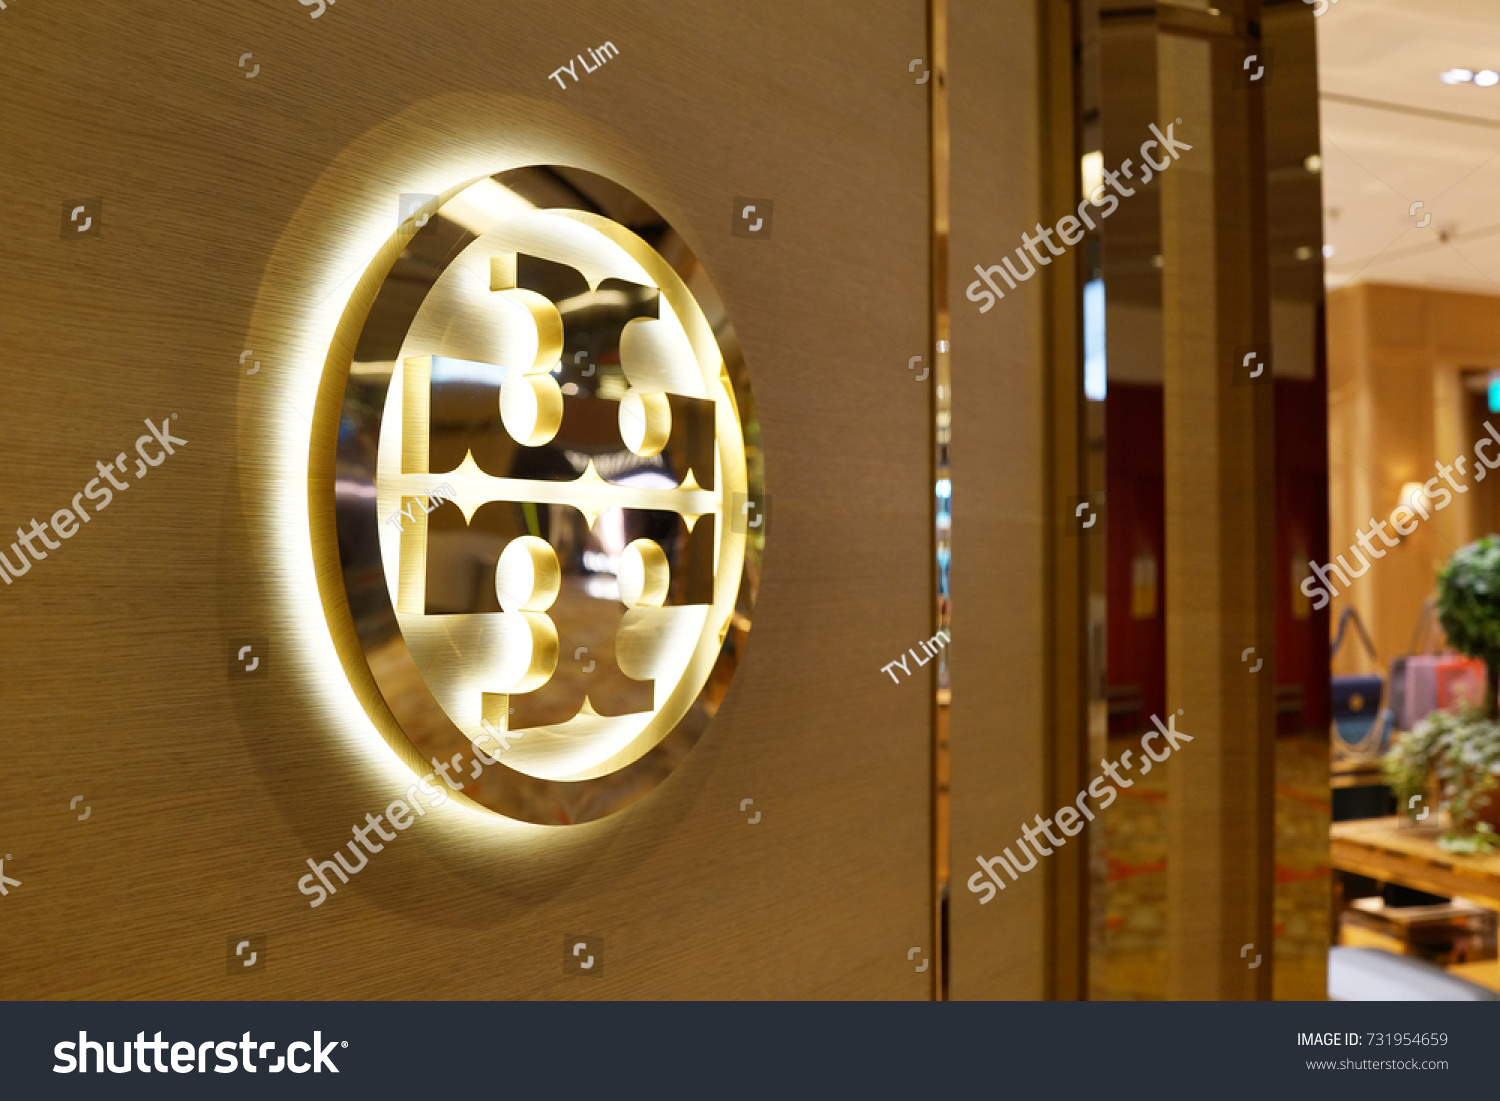 Singapore october 4 2017 tory burch stock photo 731954659 shutterstock singapore october 4 2017 tory burch logo on store front sign in changi buycottarizona Images